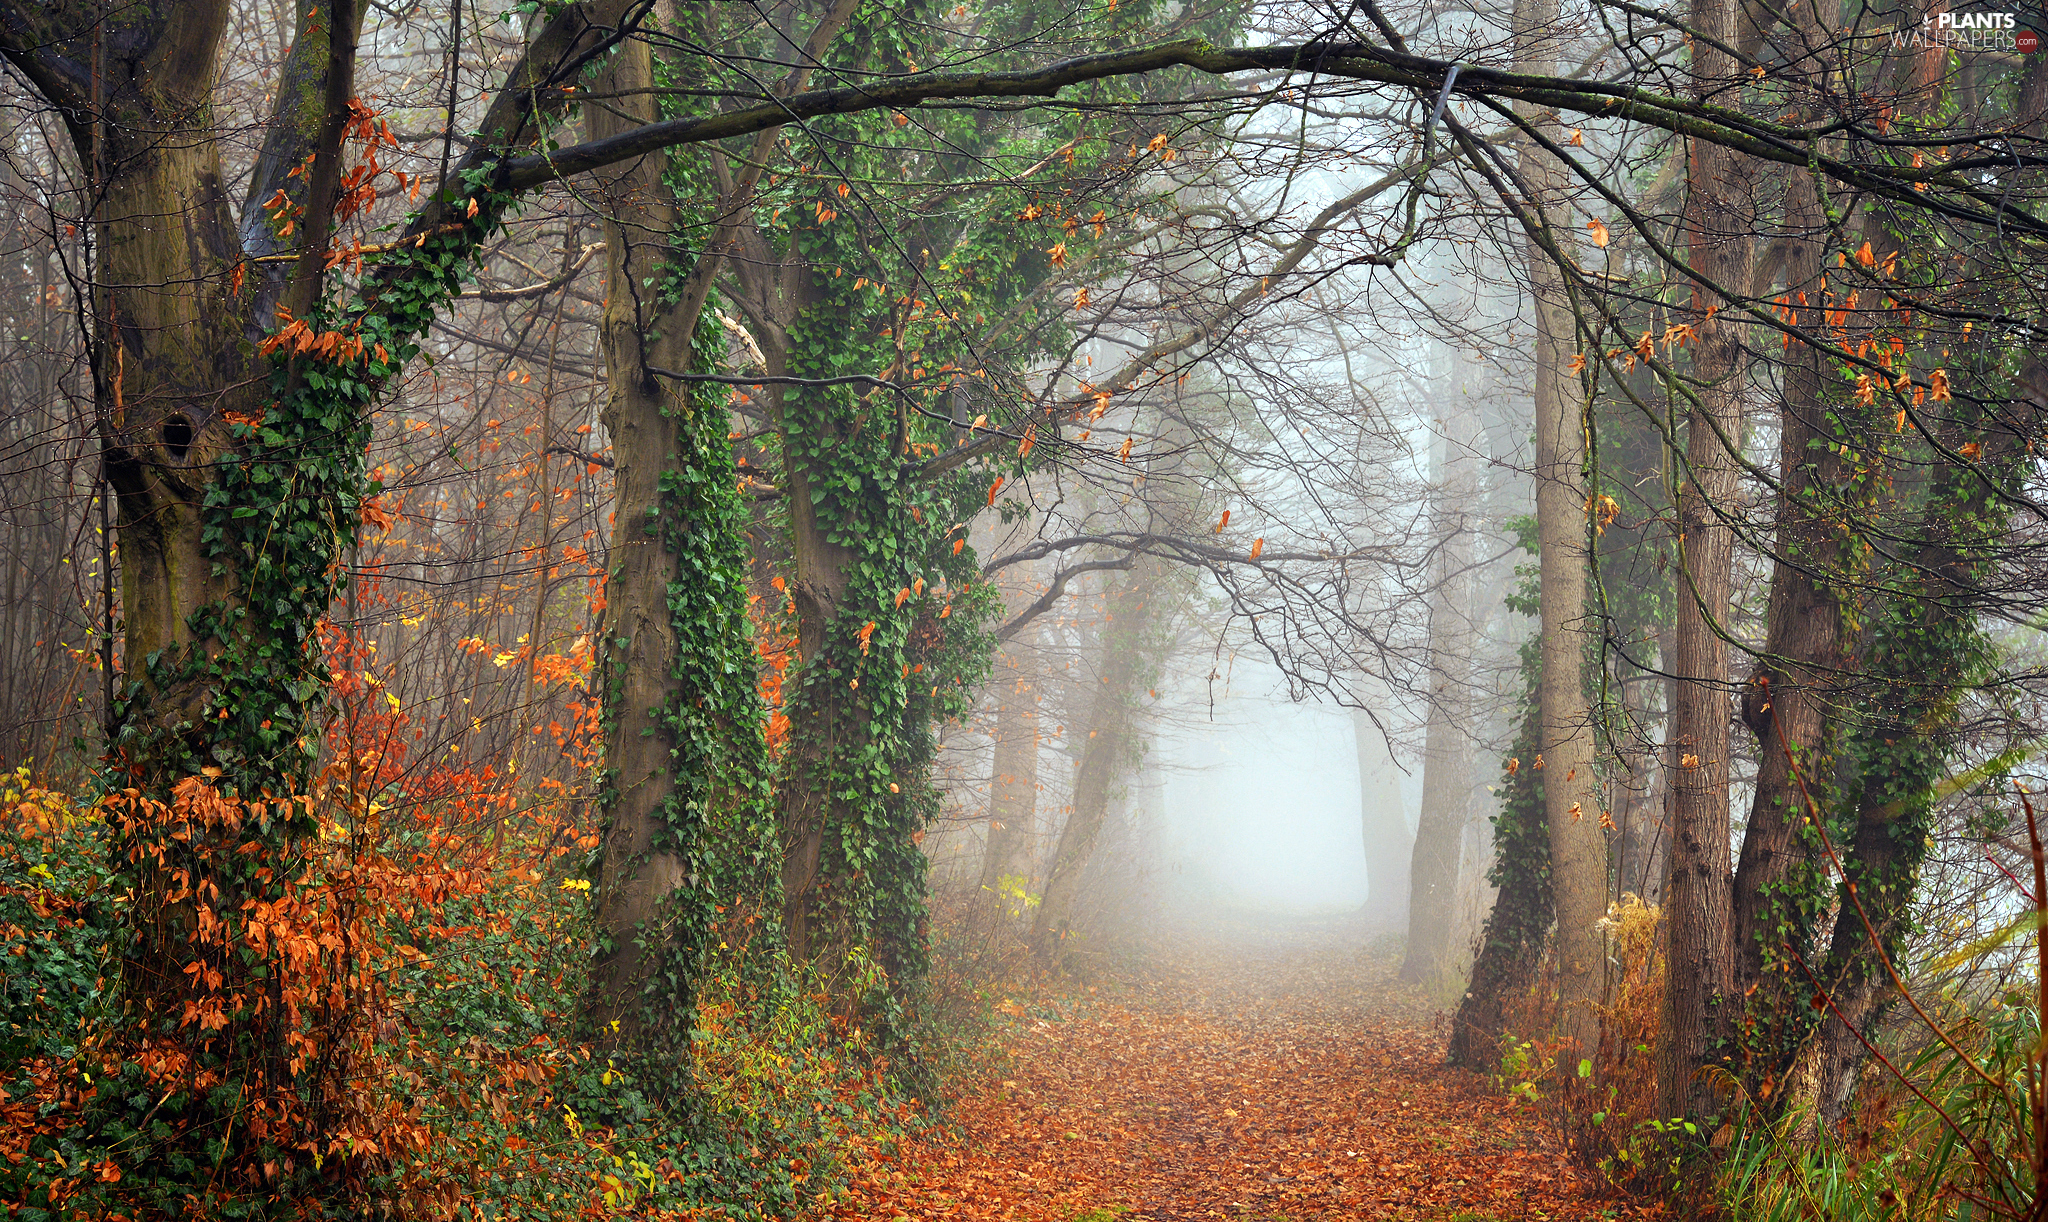 viewes, forest, Leaf, trees, autumn, Vines, Way